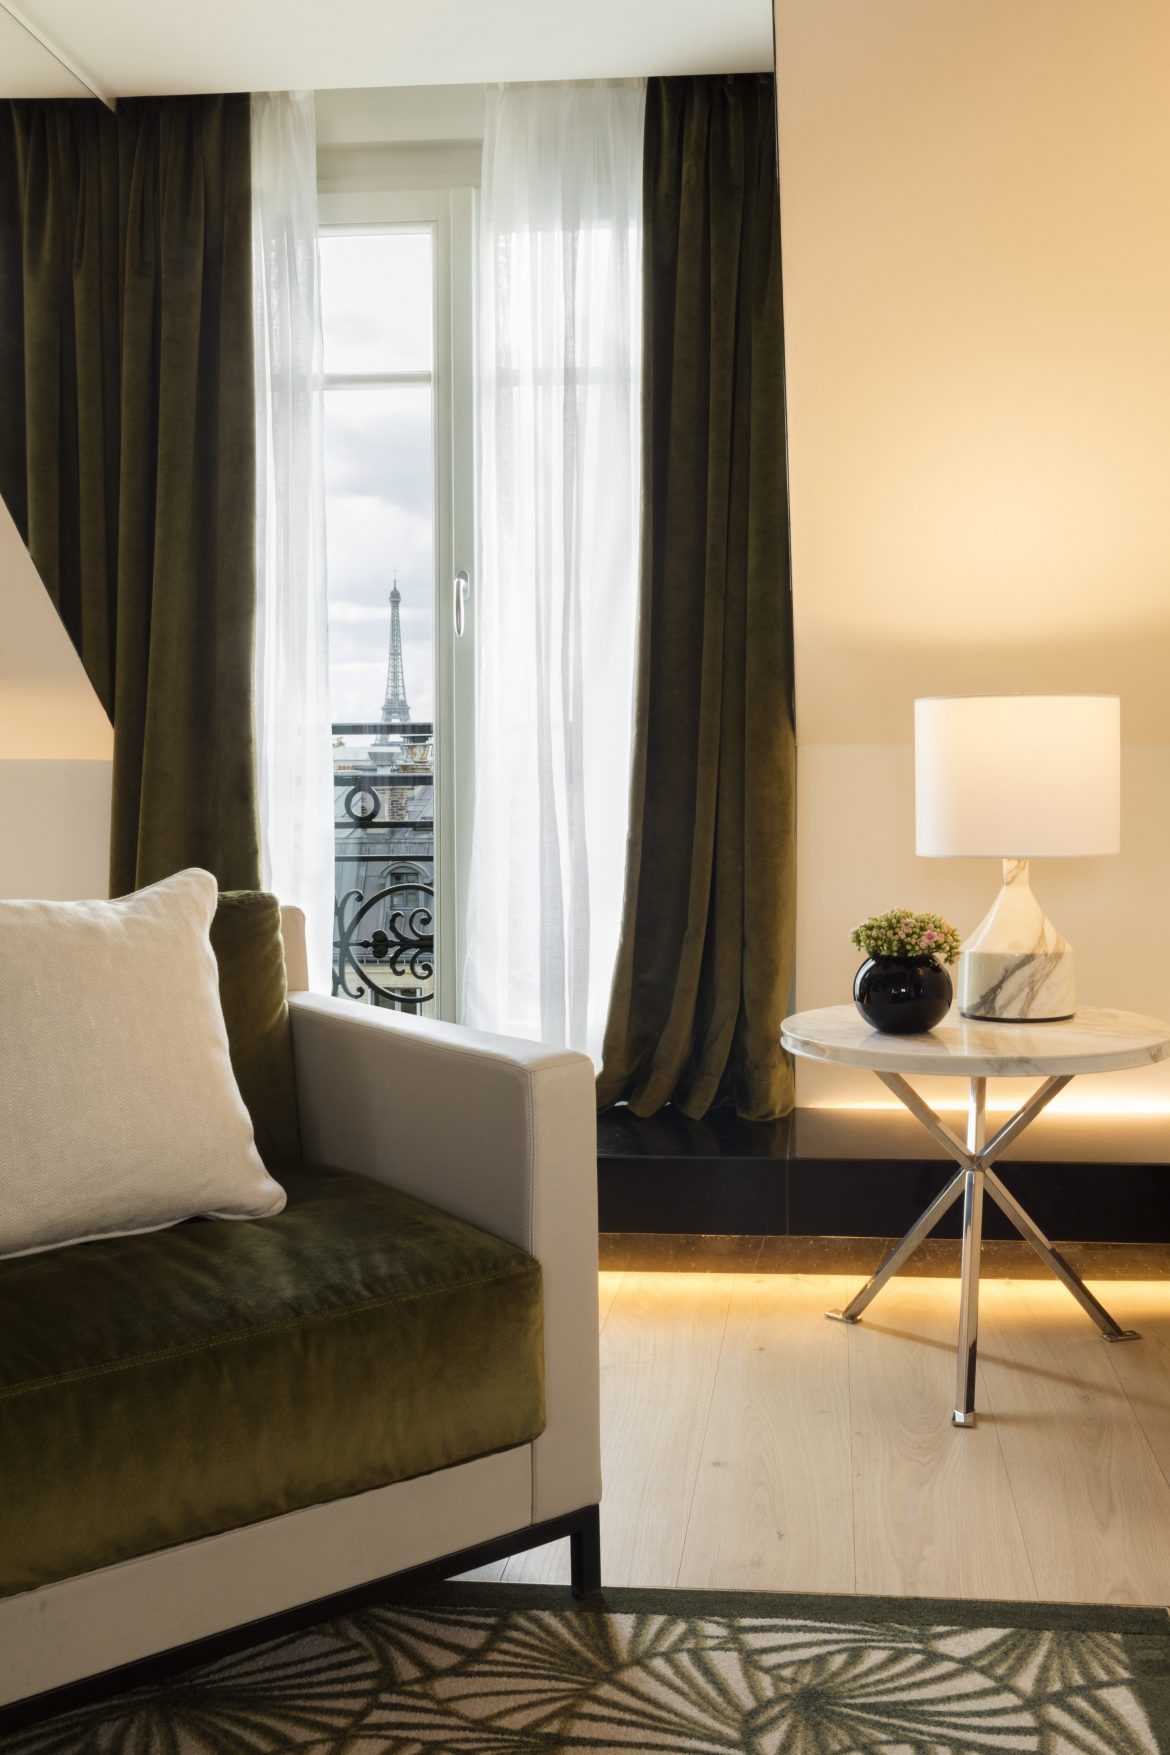 hyatt-paris-madeleine-presidential-suite-living-room-eiffel-view-min-1170x1755.jpg